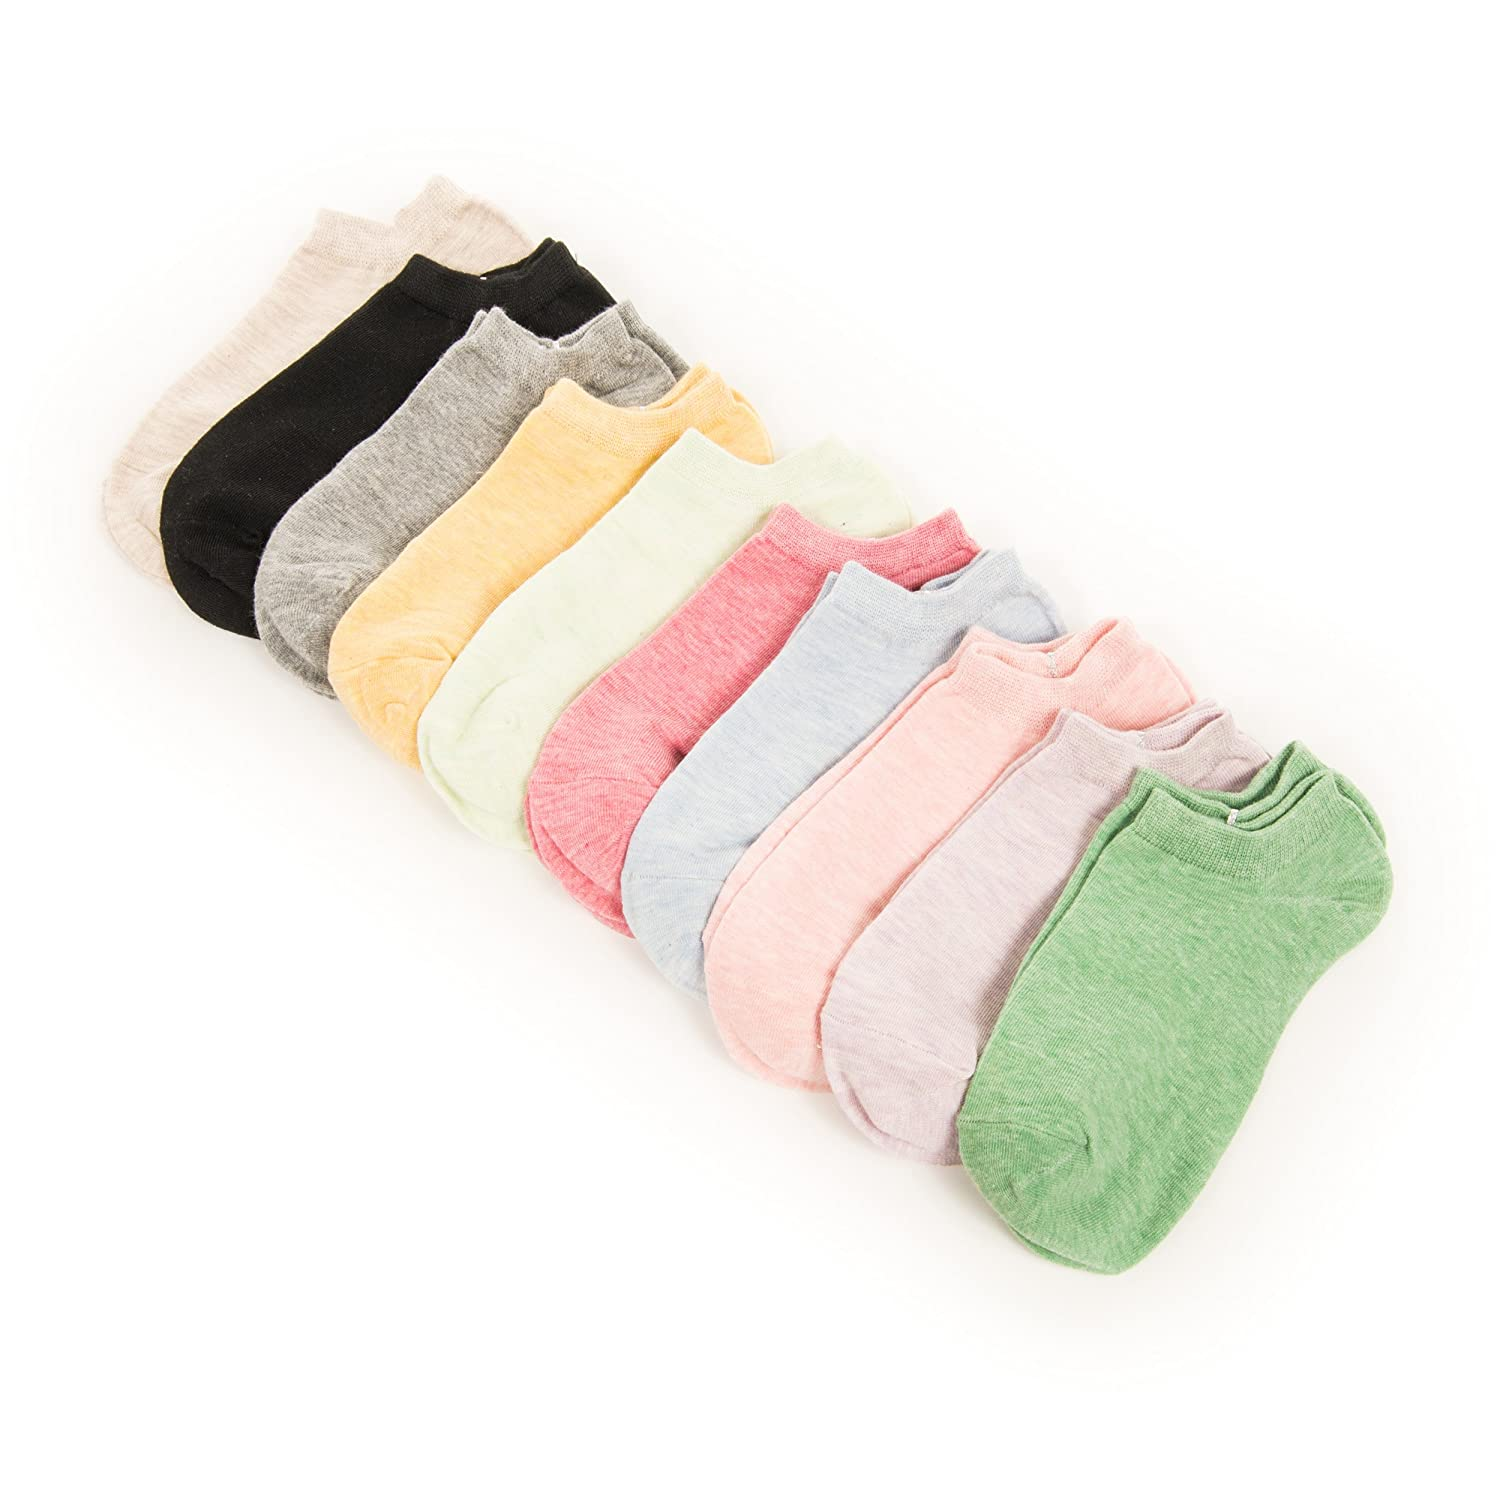 Fab-ganics Organic 100 Cotton Women's Ankle Socks 10 Pack size 5-8